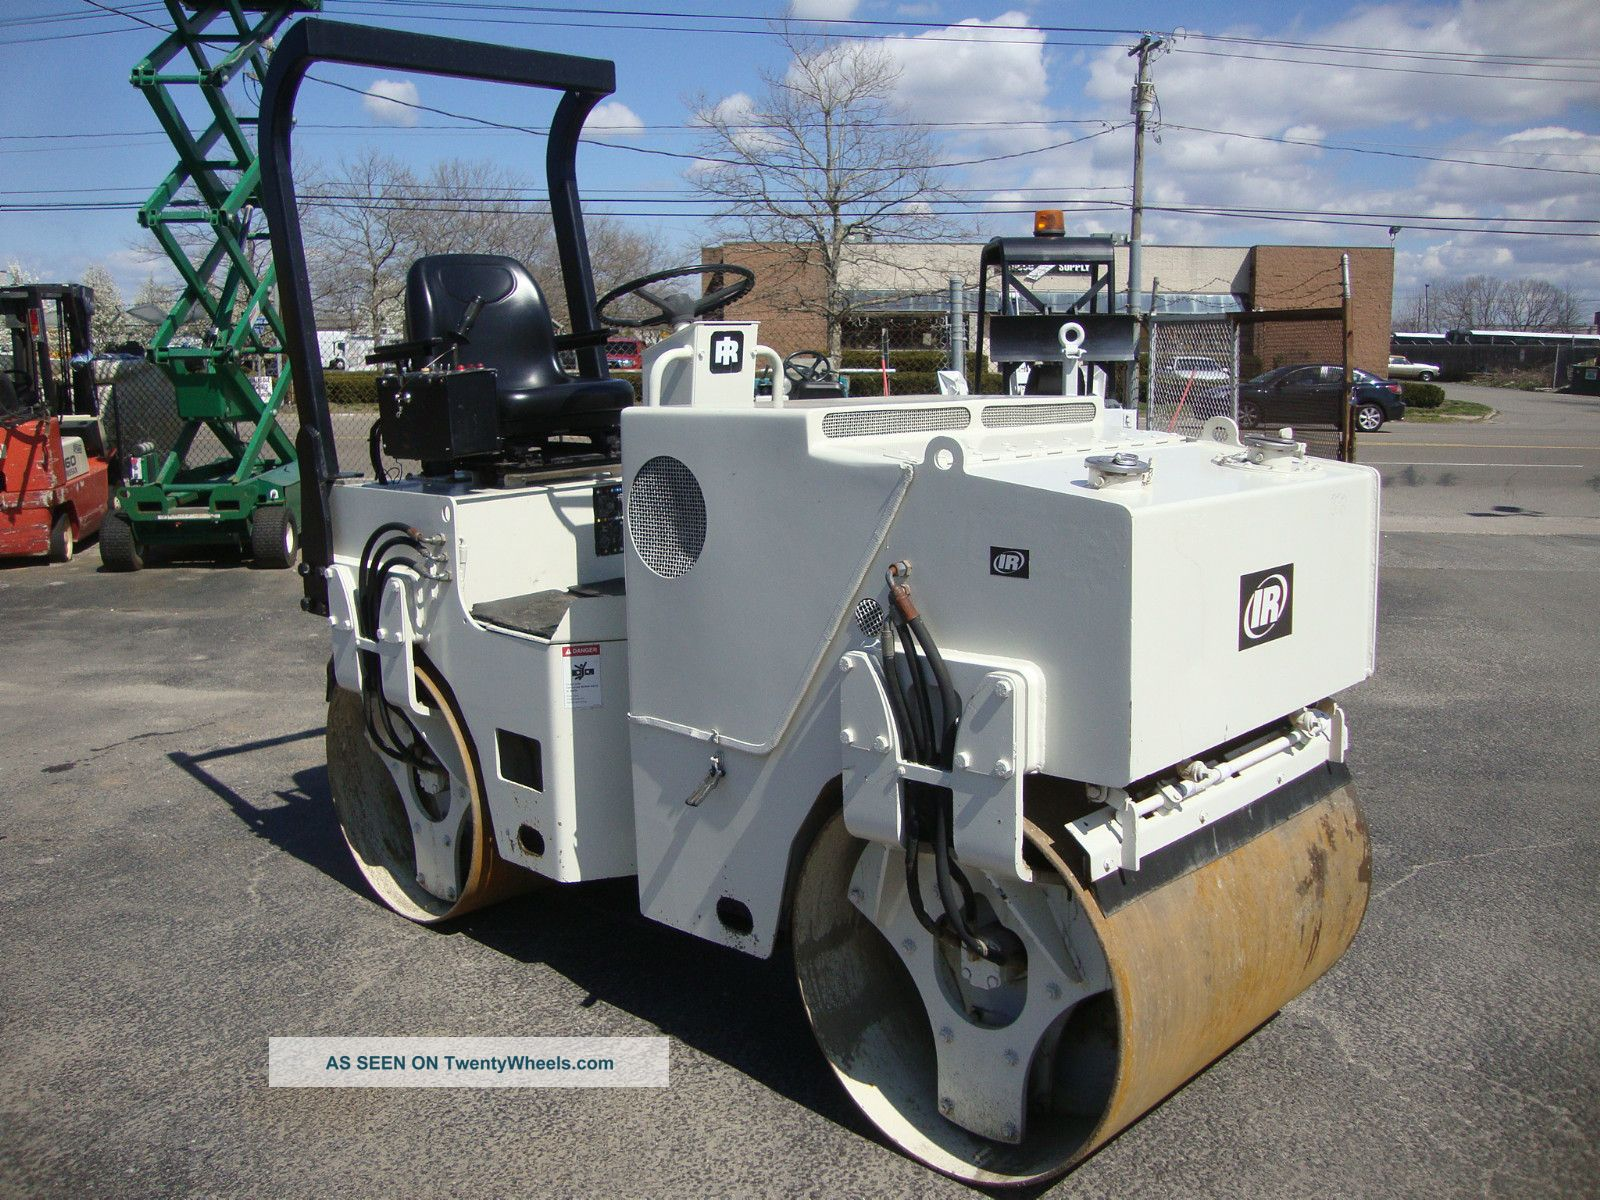 Ingersoll - Rand Dd22 Smooth Drum Articulating Vibratory Asphalt Roller 6967 Compactors & Rollers - Riding photo